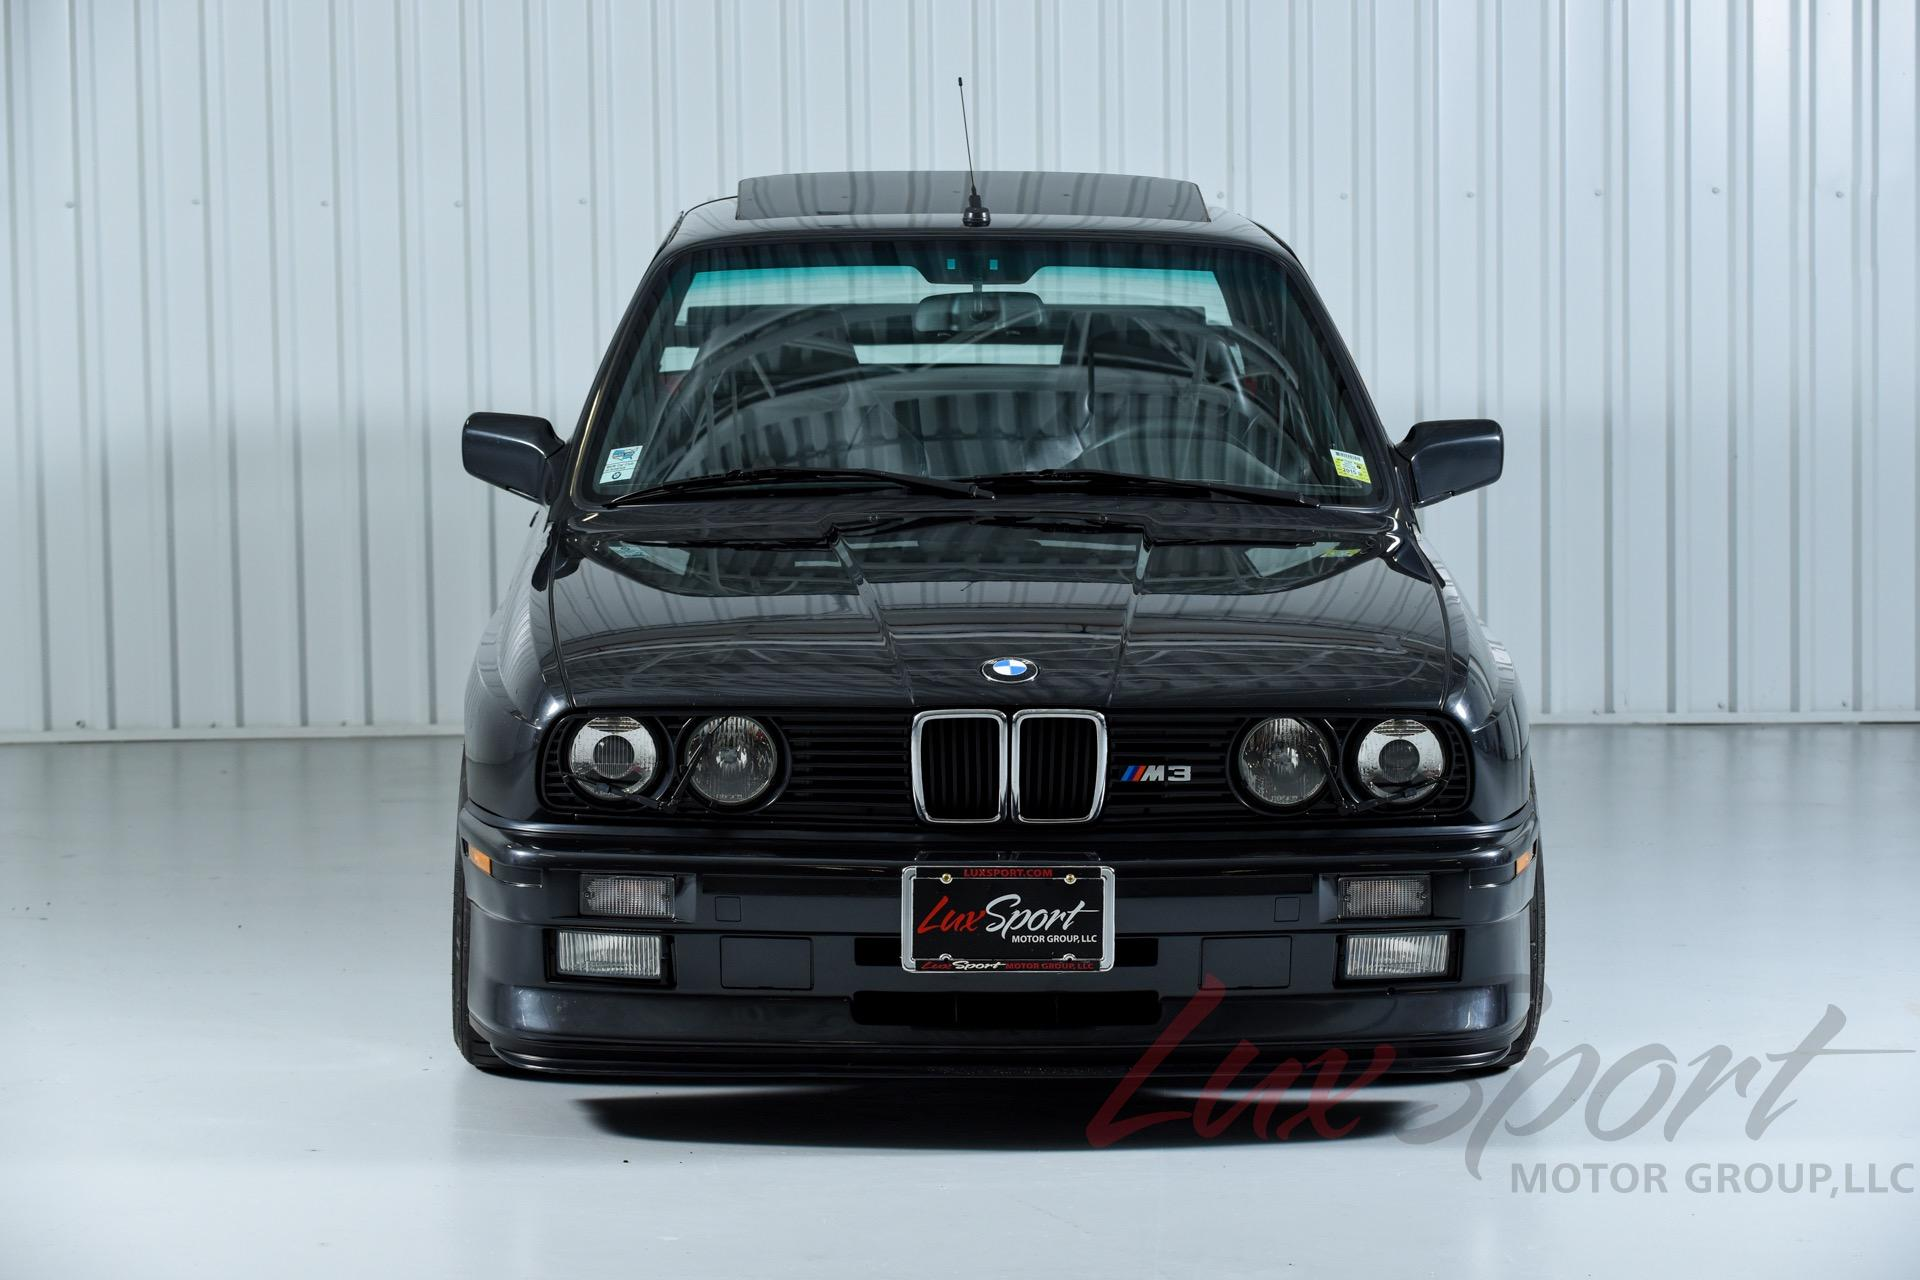 1988 Bmw E30 M3 Coupe Stock 1988150a For Sale Near New Hyde Park Ny Ny Bmw Dealer